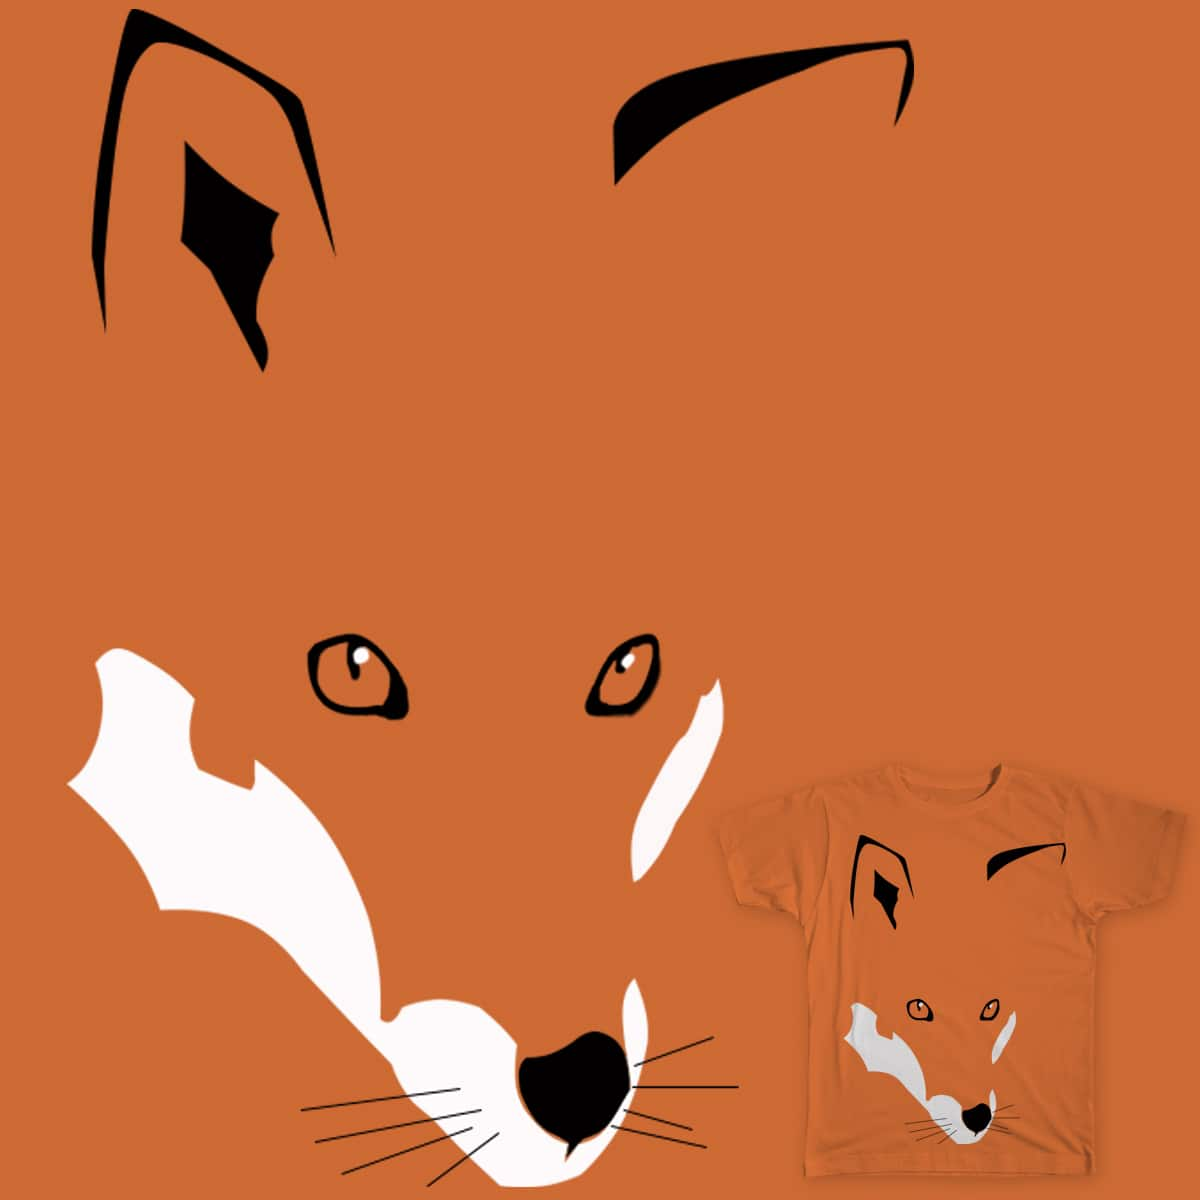 Score What Does The Fox Say By Jopaul12 On Threadless